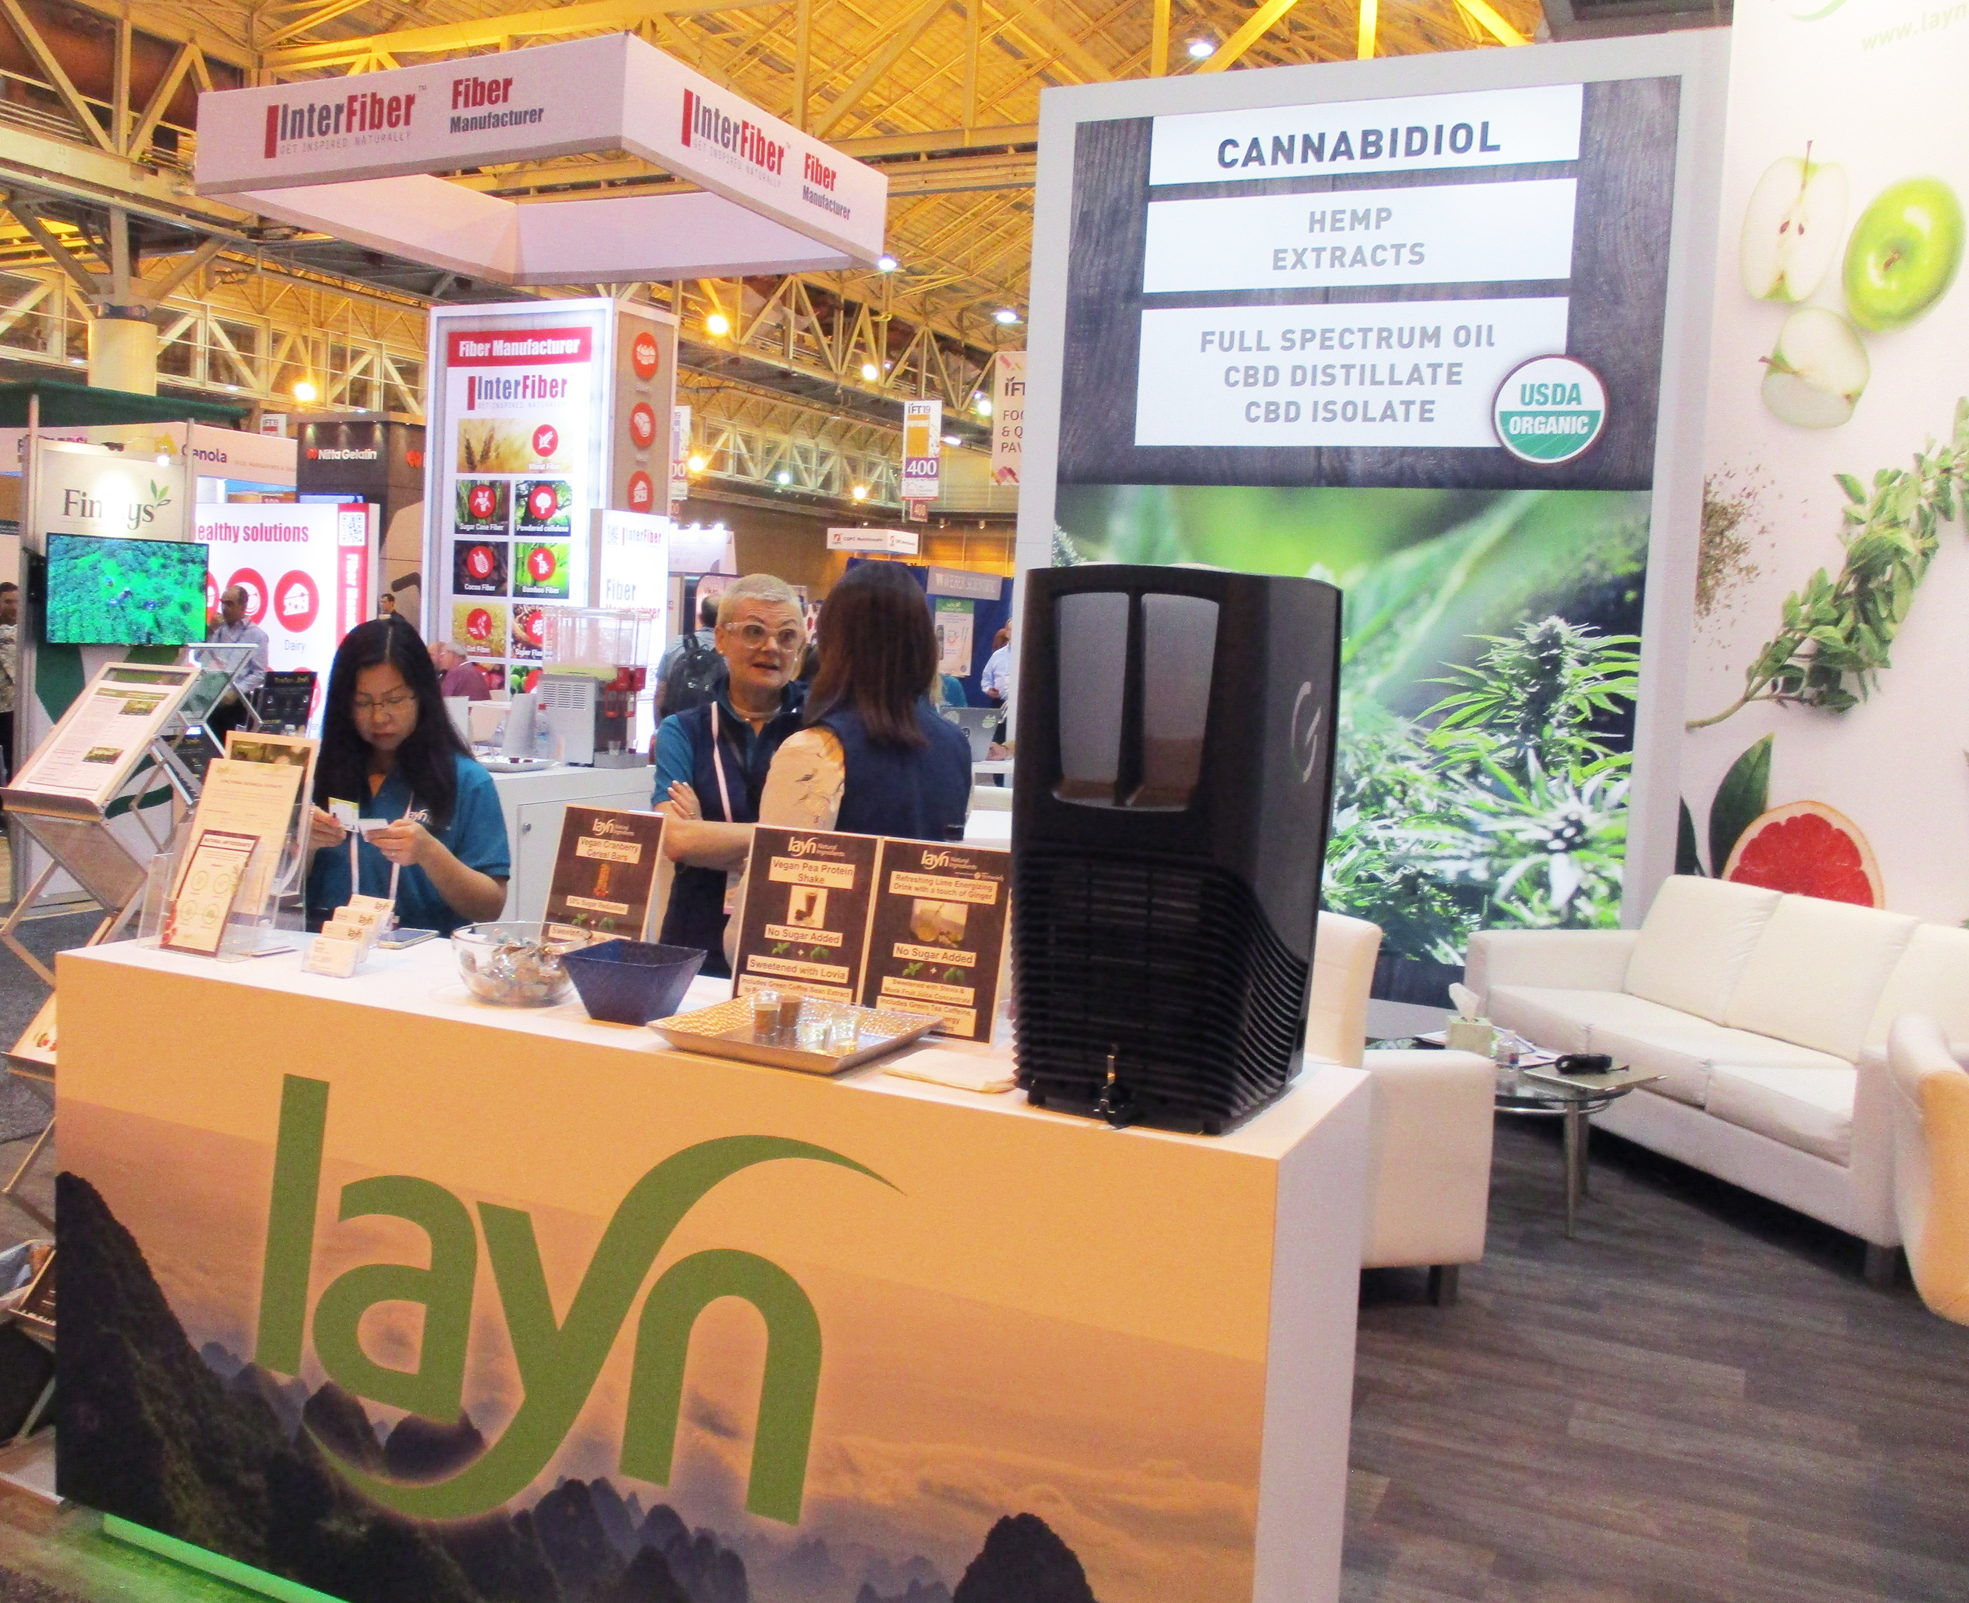 Expanding CBD applications: Layn's US$60 million processing